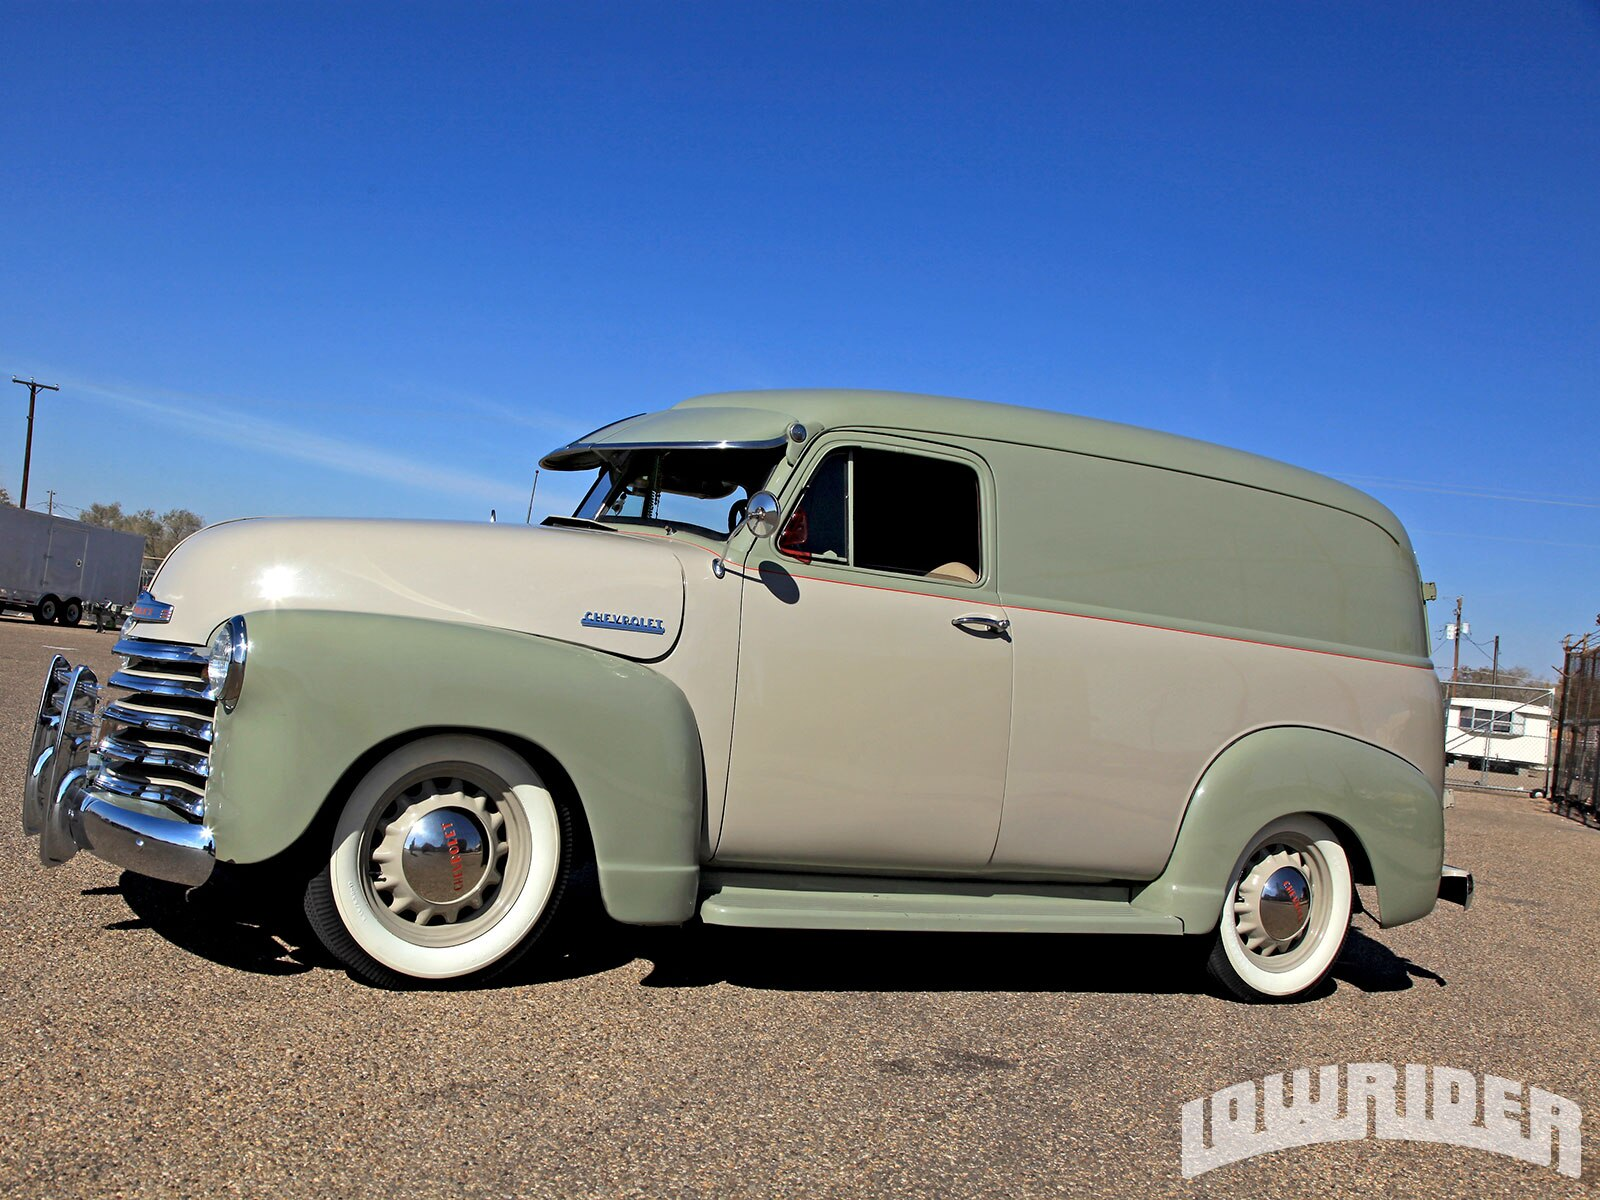 01-1951-chevrolet-panel-truck-driver-side-view1